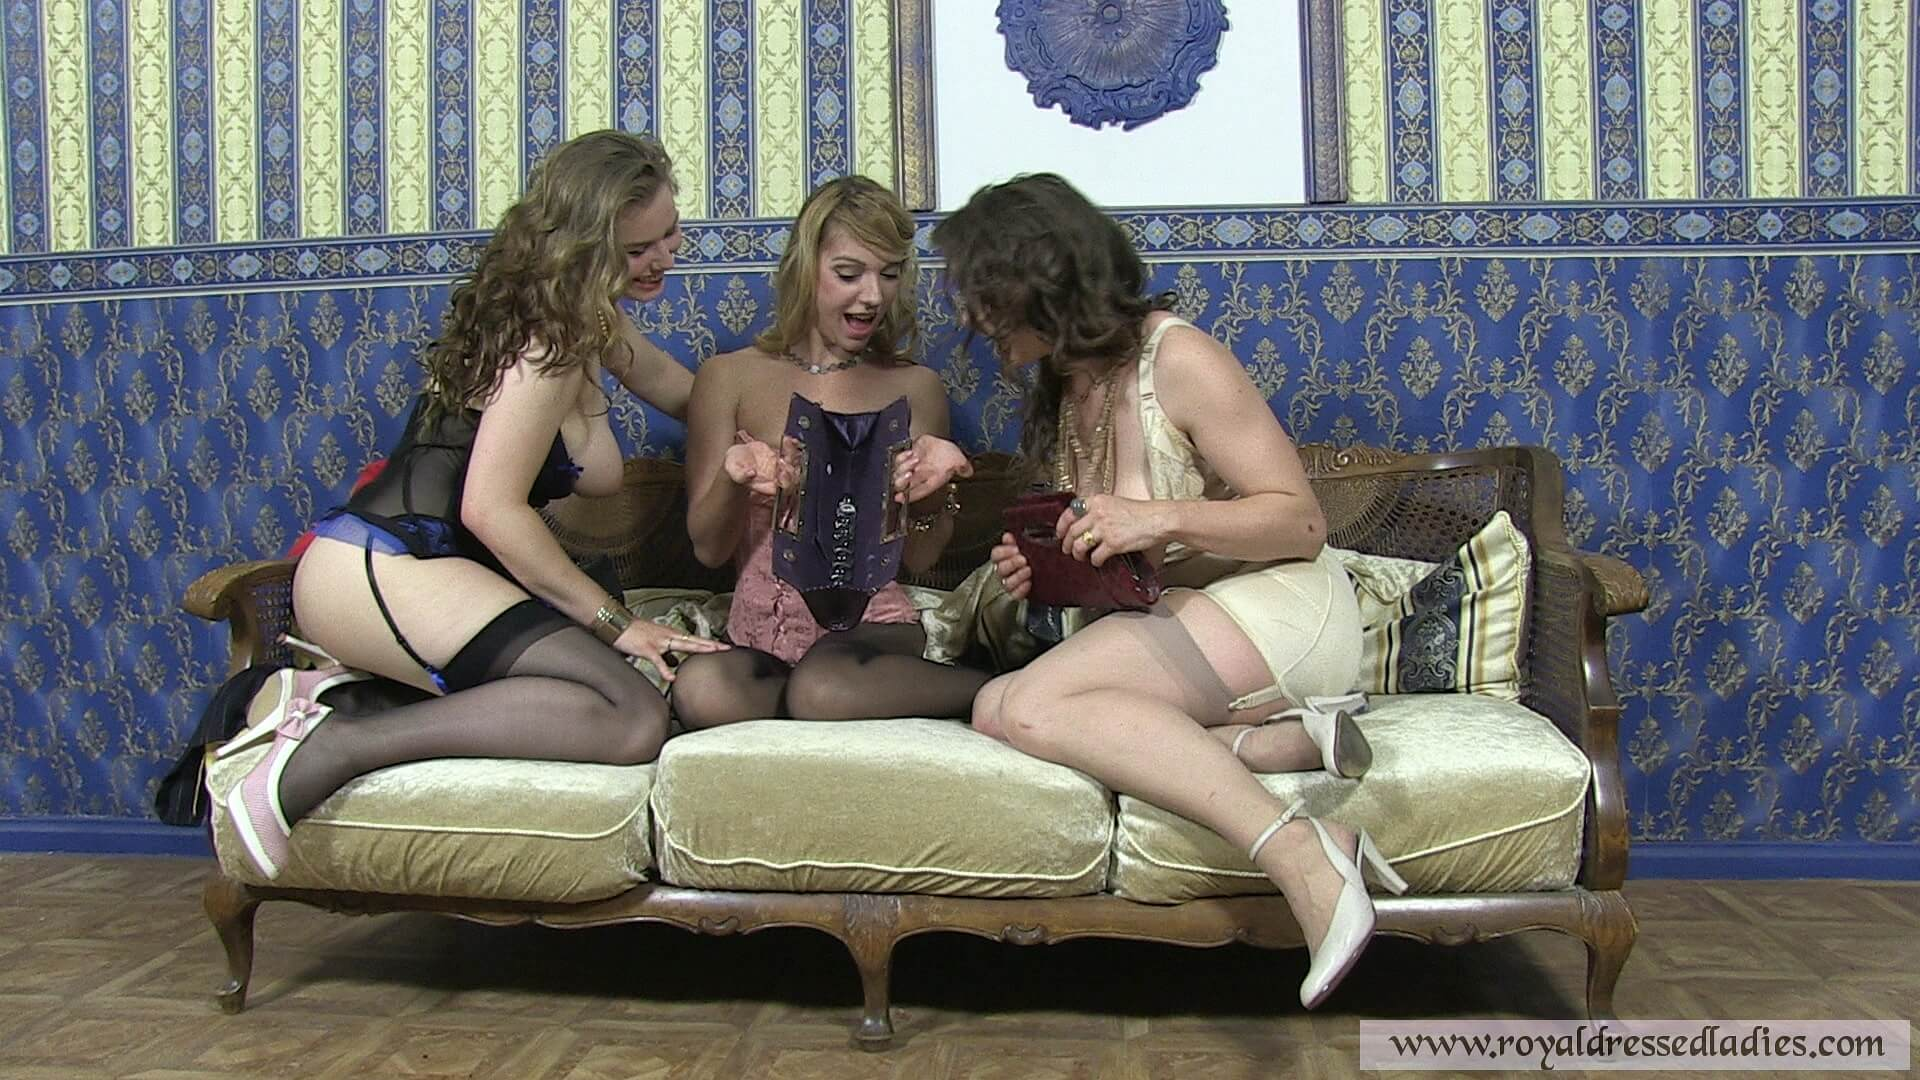 Threesome Swinglifestyle Erotic Lesbians Games Part 2